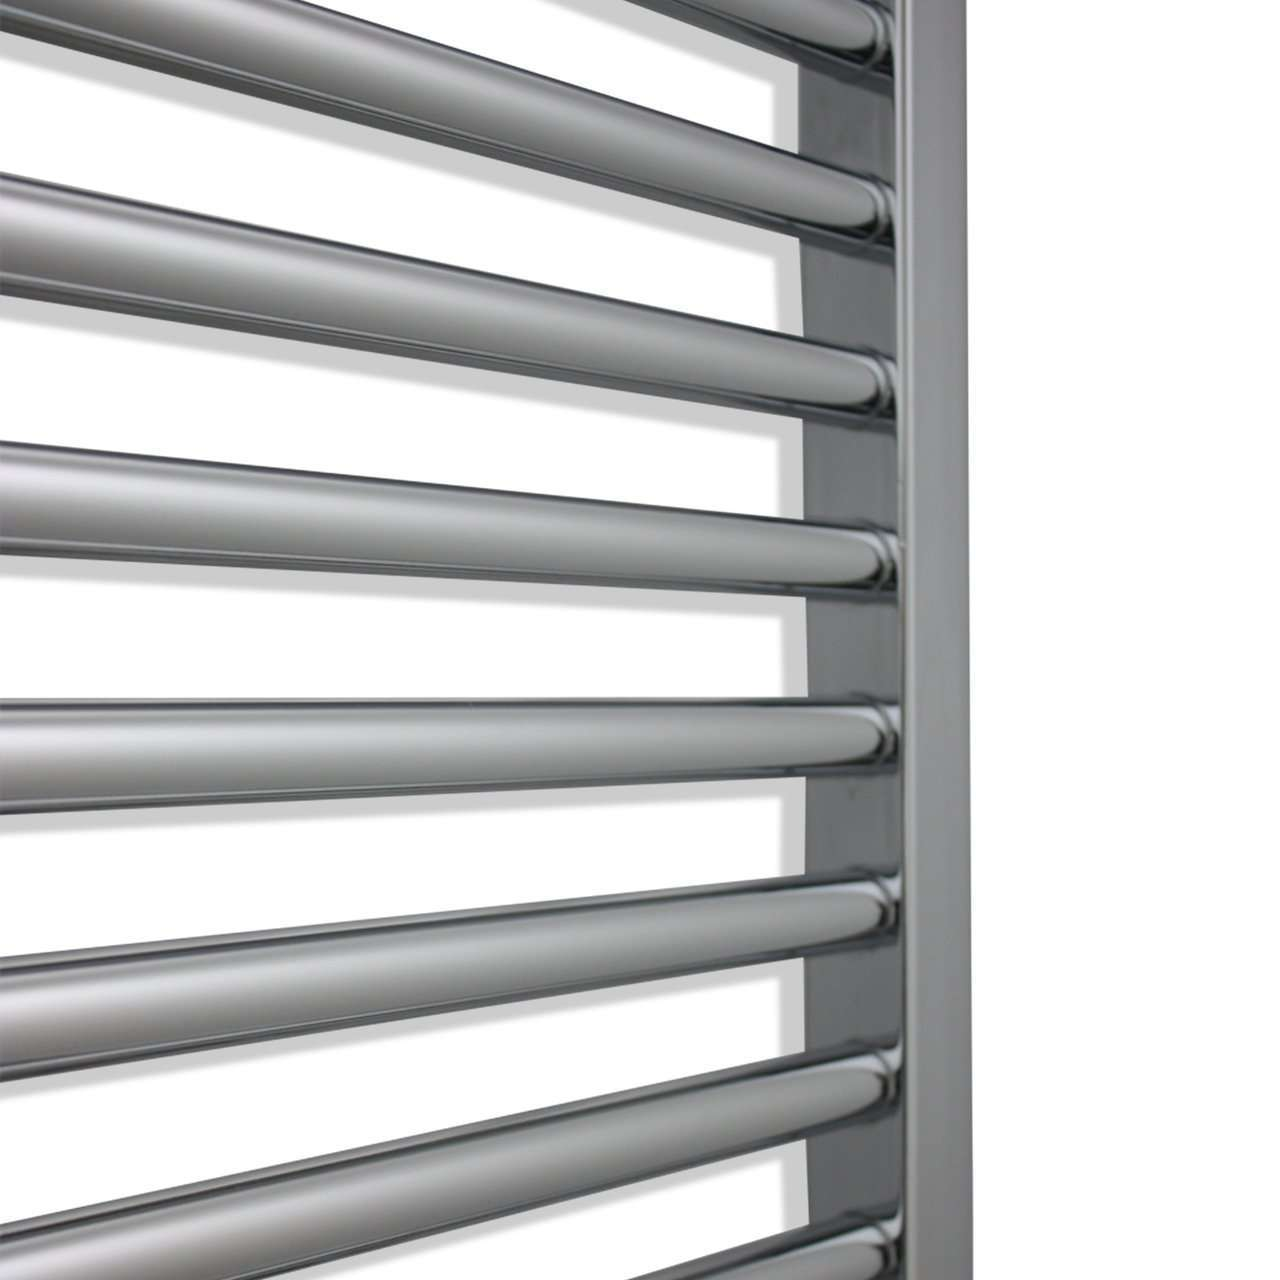 450mm Wide 1300mm High Curved Chrome Heated Towel Rail Radiator HTR